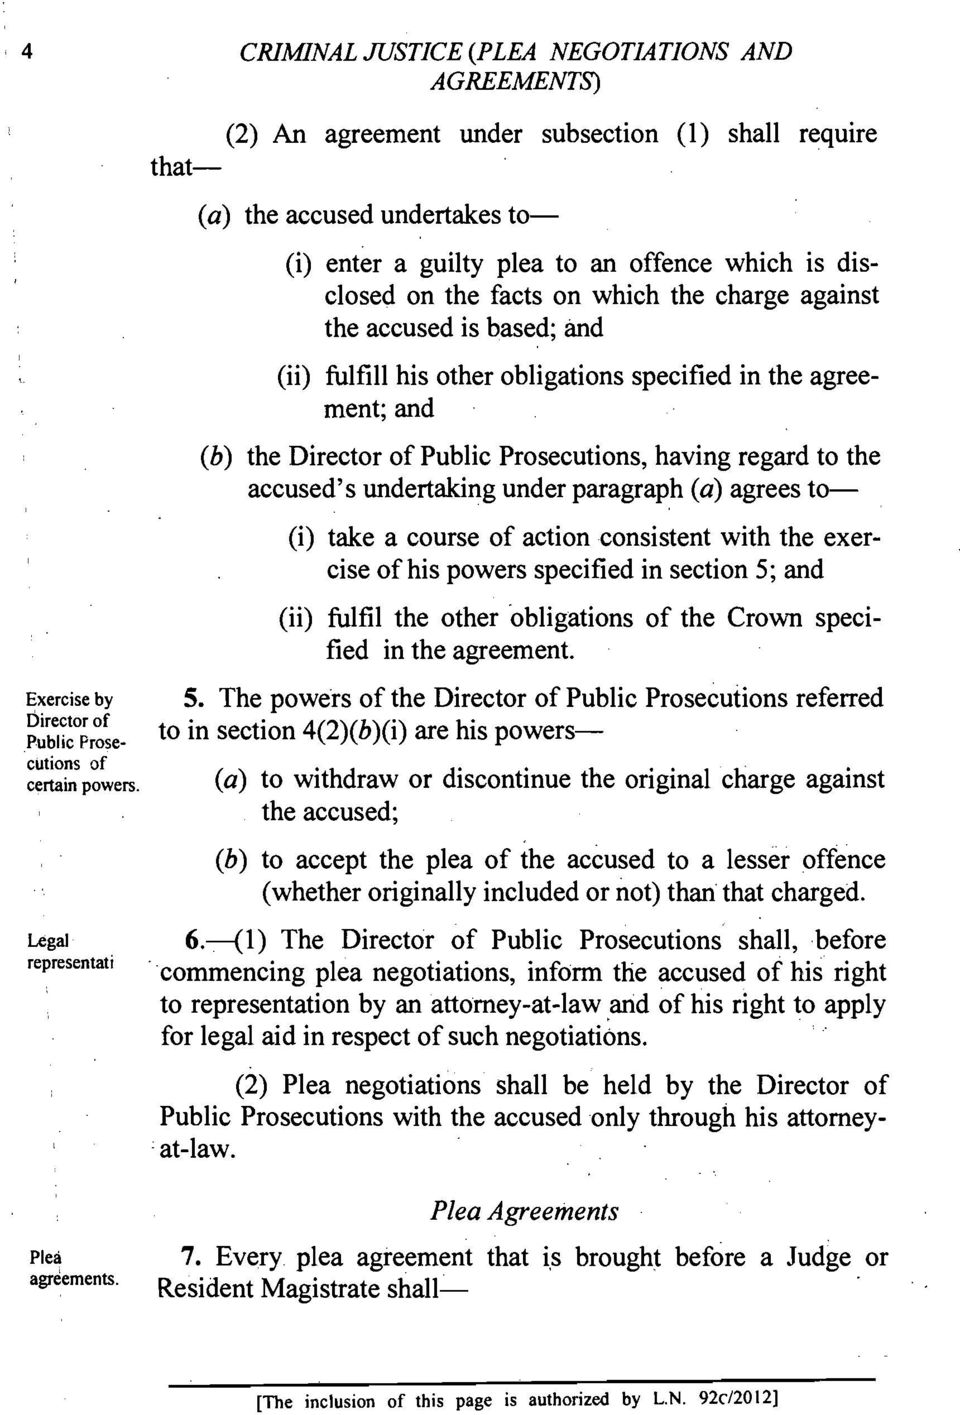 disclosed on the facts on which the charge against the accused is based; and (ii) fulfill his other obligations specified in the agreement; and (b) the Director of Public Prosecutions, having regard